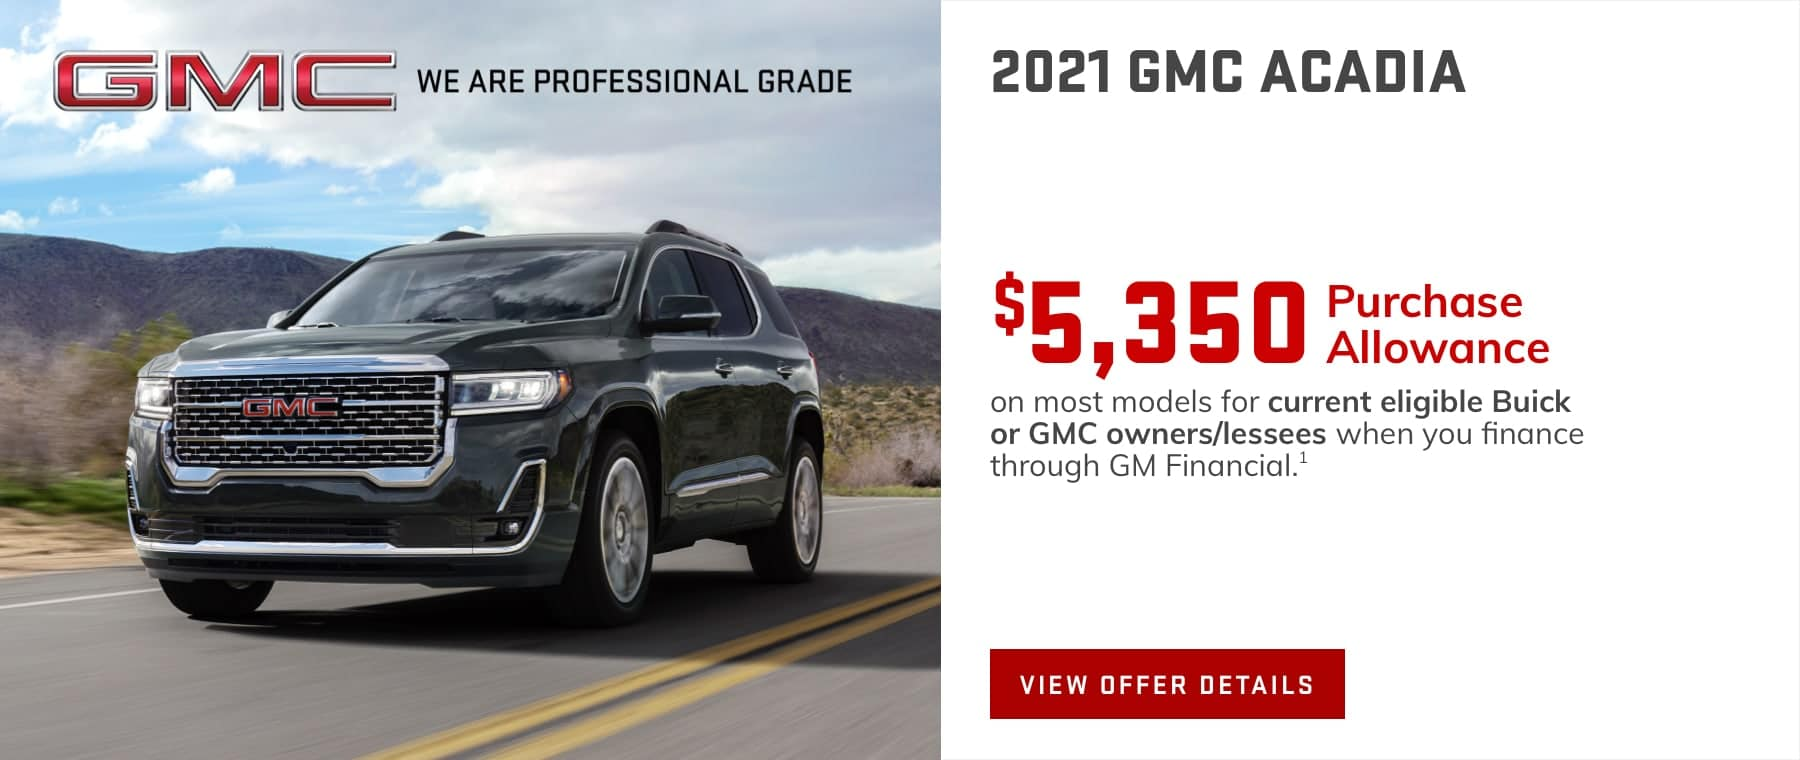 $5,350 Purchase Allowance on most models for current eligible Buick or GMC owners/lessees when you finance through GM Financial.1